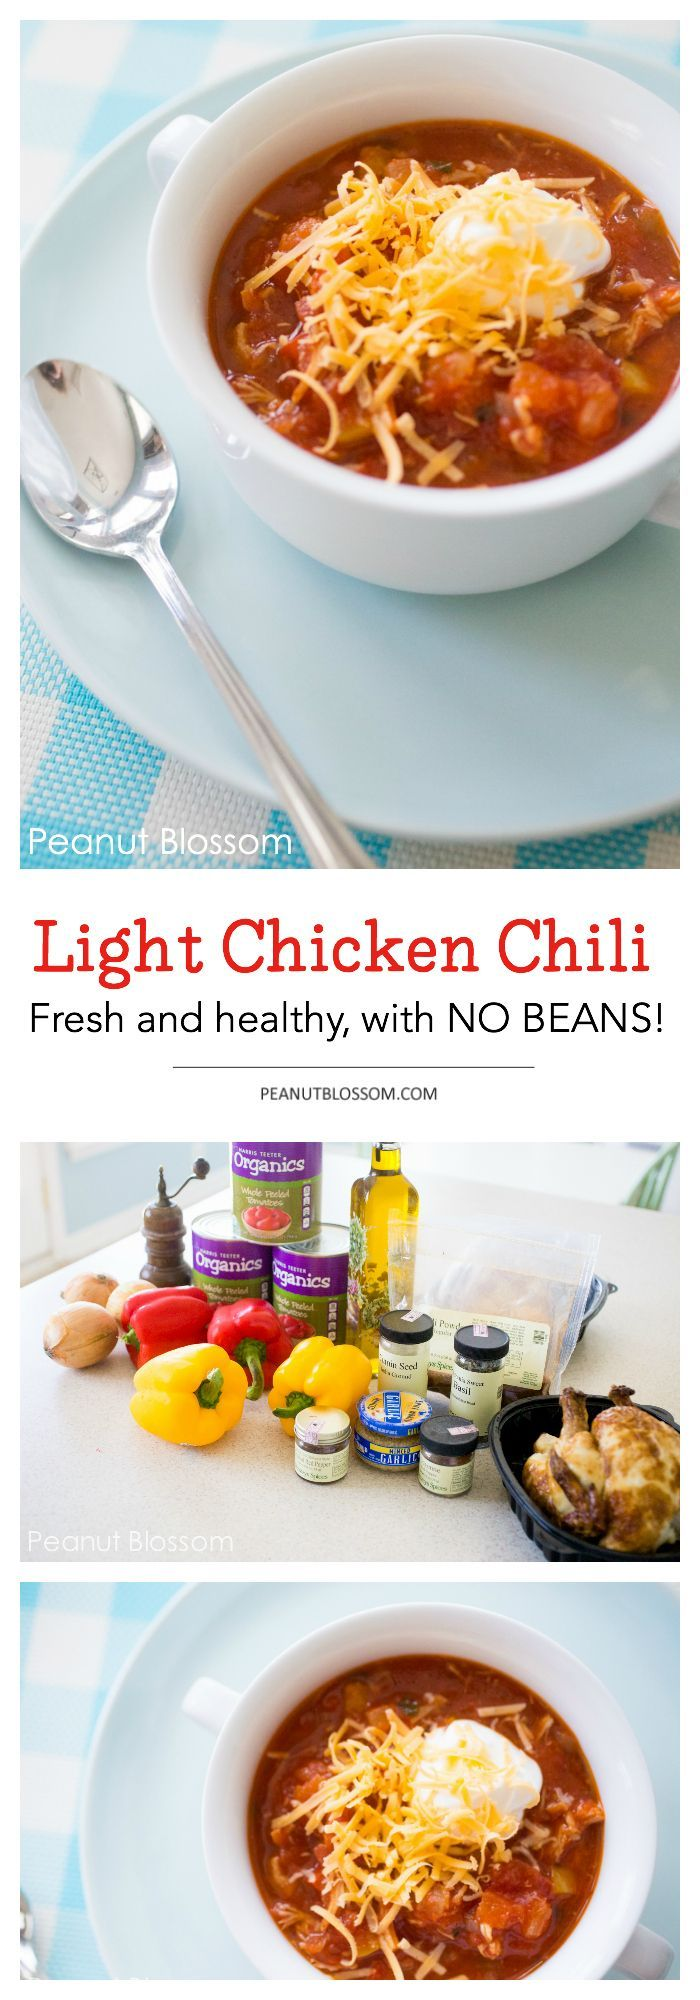 """Light and healthy chicken chili recipe is perfect for a cold and chilly weekend. The kids will love that this chili recipe has no beans in it! Serve it with some tortilla chips and a dollop of sour cream for dunking. I told my little one it was """"salsa soup"""" and she dug right in."""